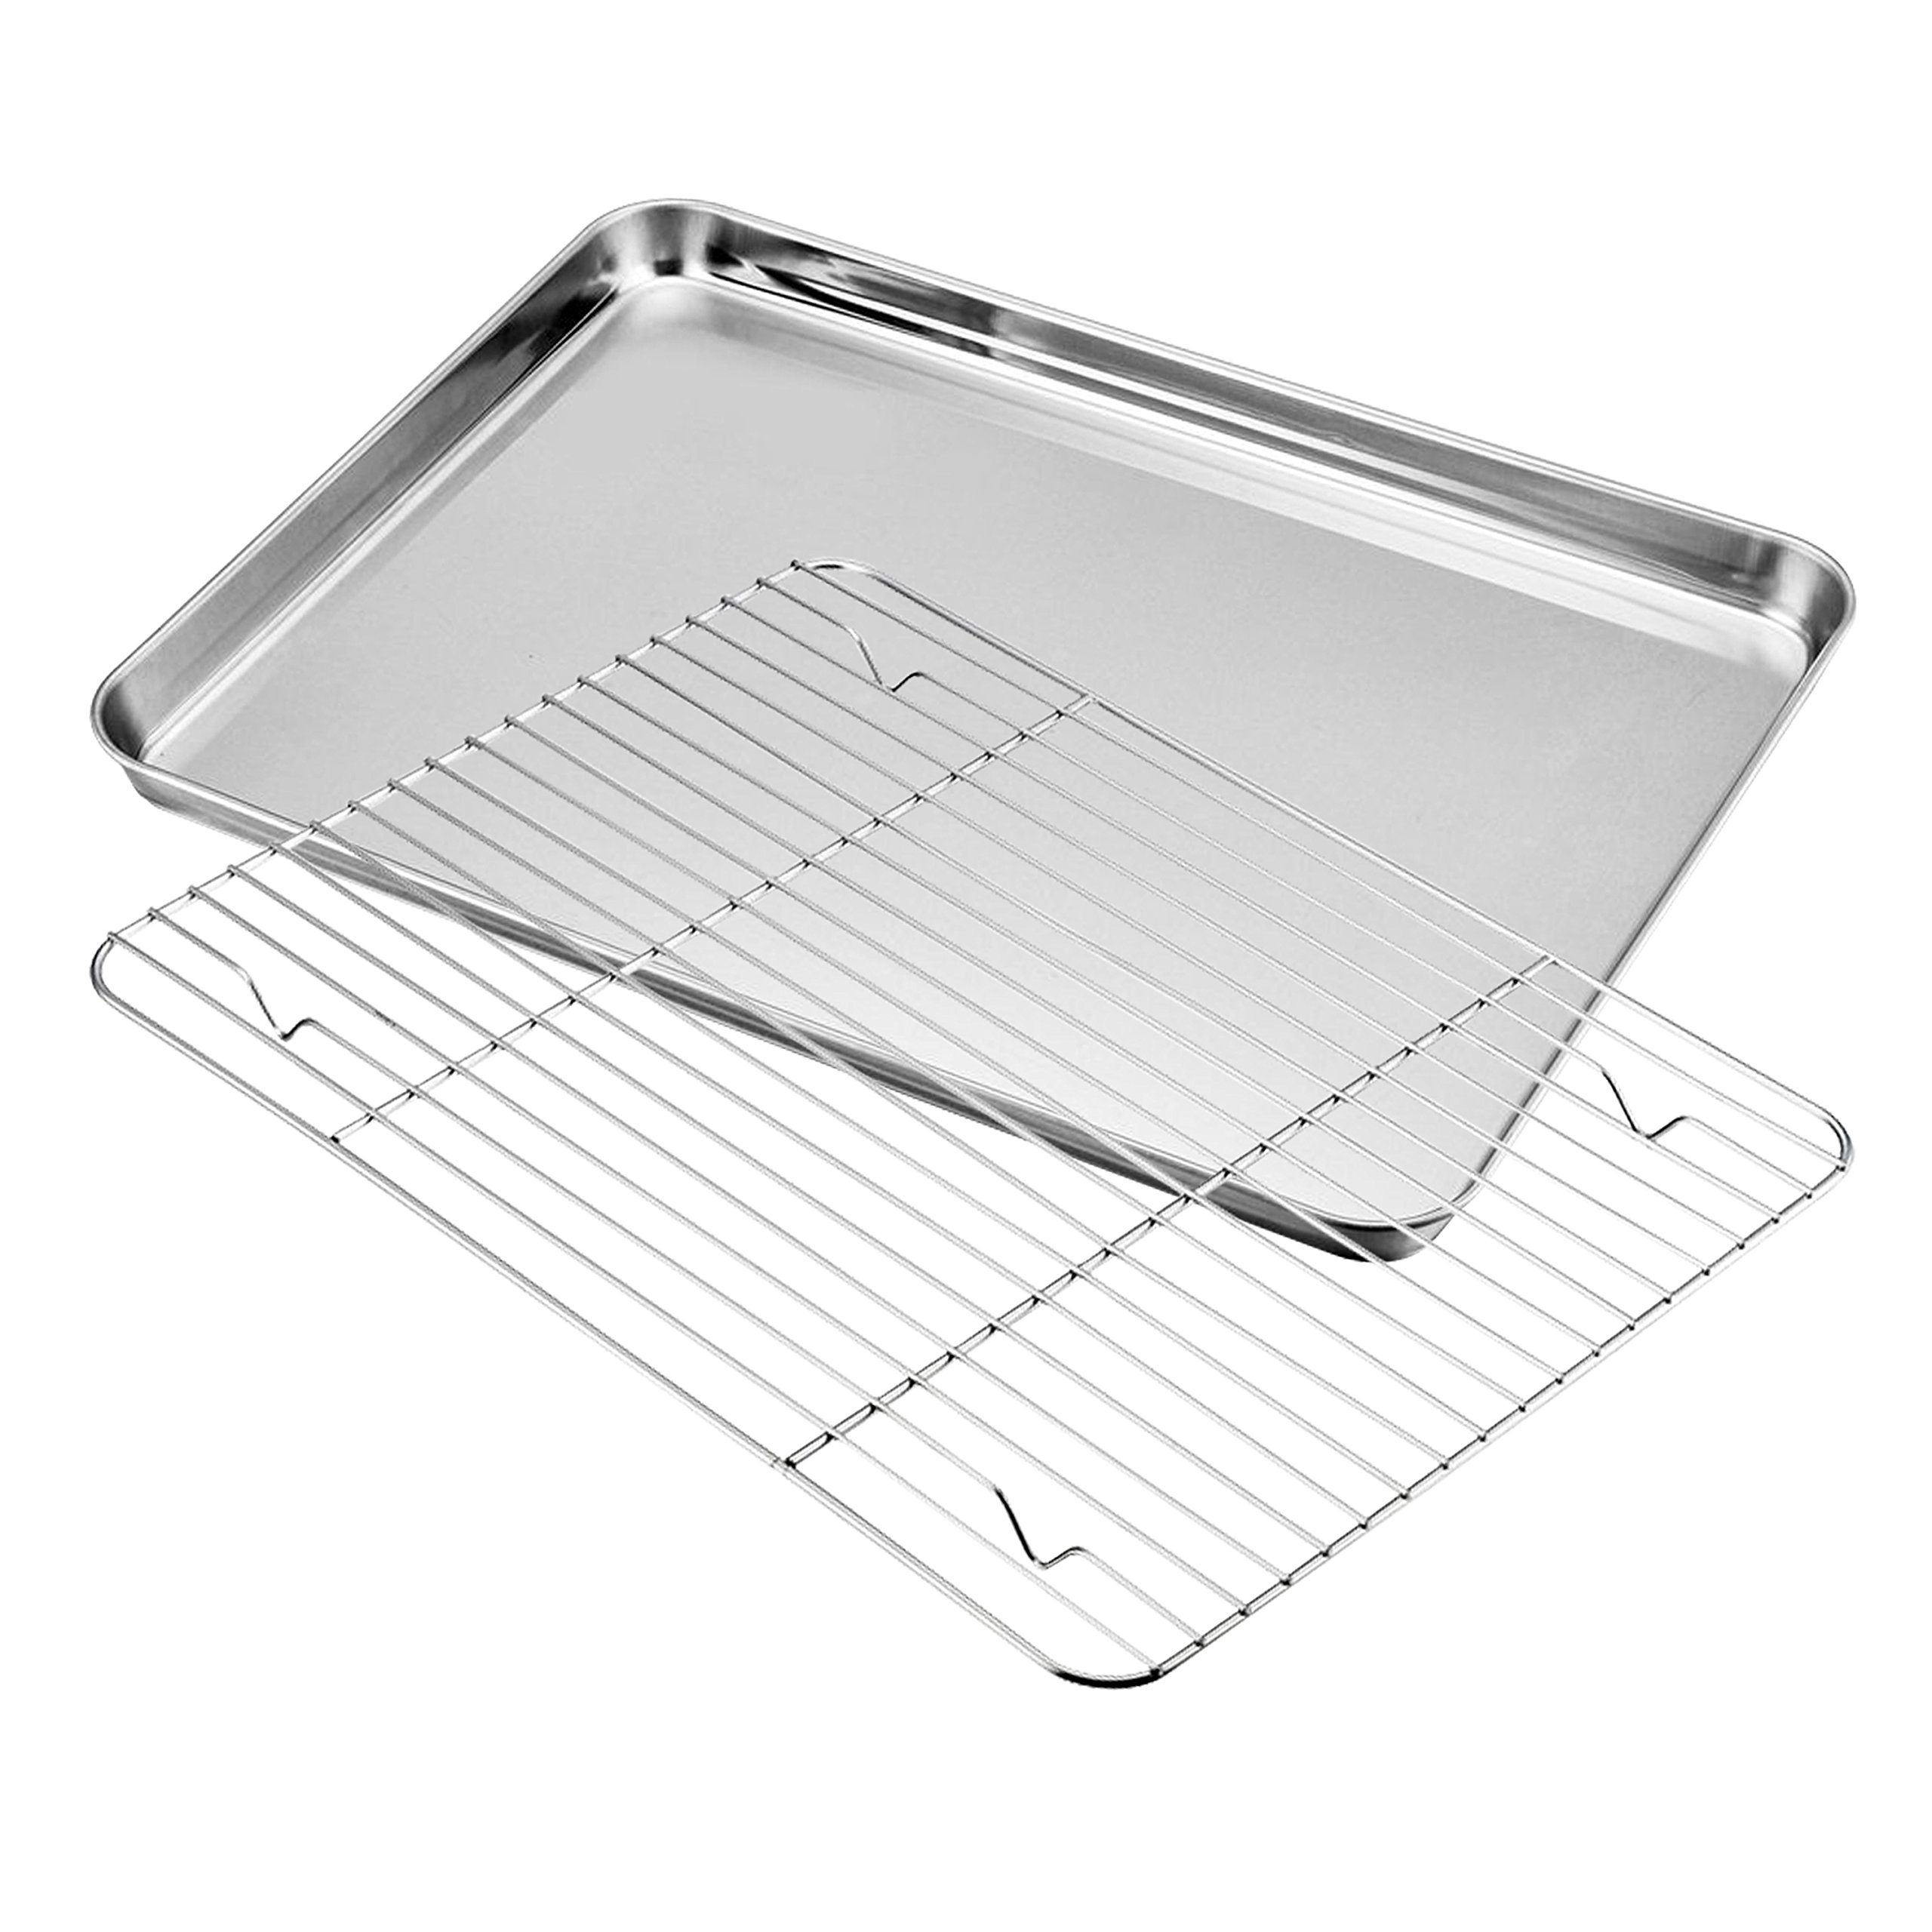 Baking sheets and Rack Set, Cookie pan with Nonstick Cooling Rack & Cookie sheets Rectangle Size 10 x 8 x 1 inch,Stainless Steel & Non Toxic & Healthy,Superior Mirror Finish & Easy Clean (1081)